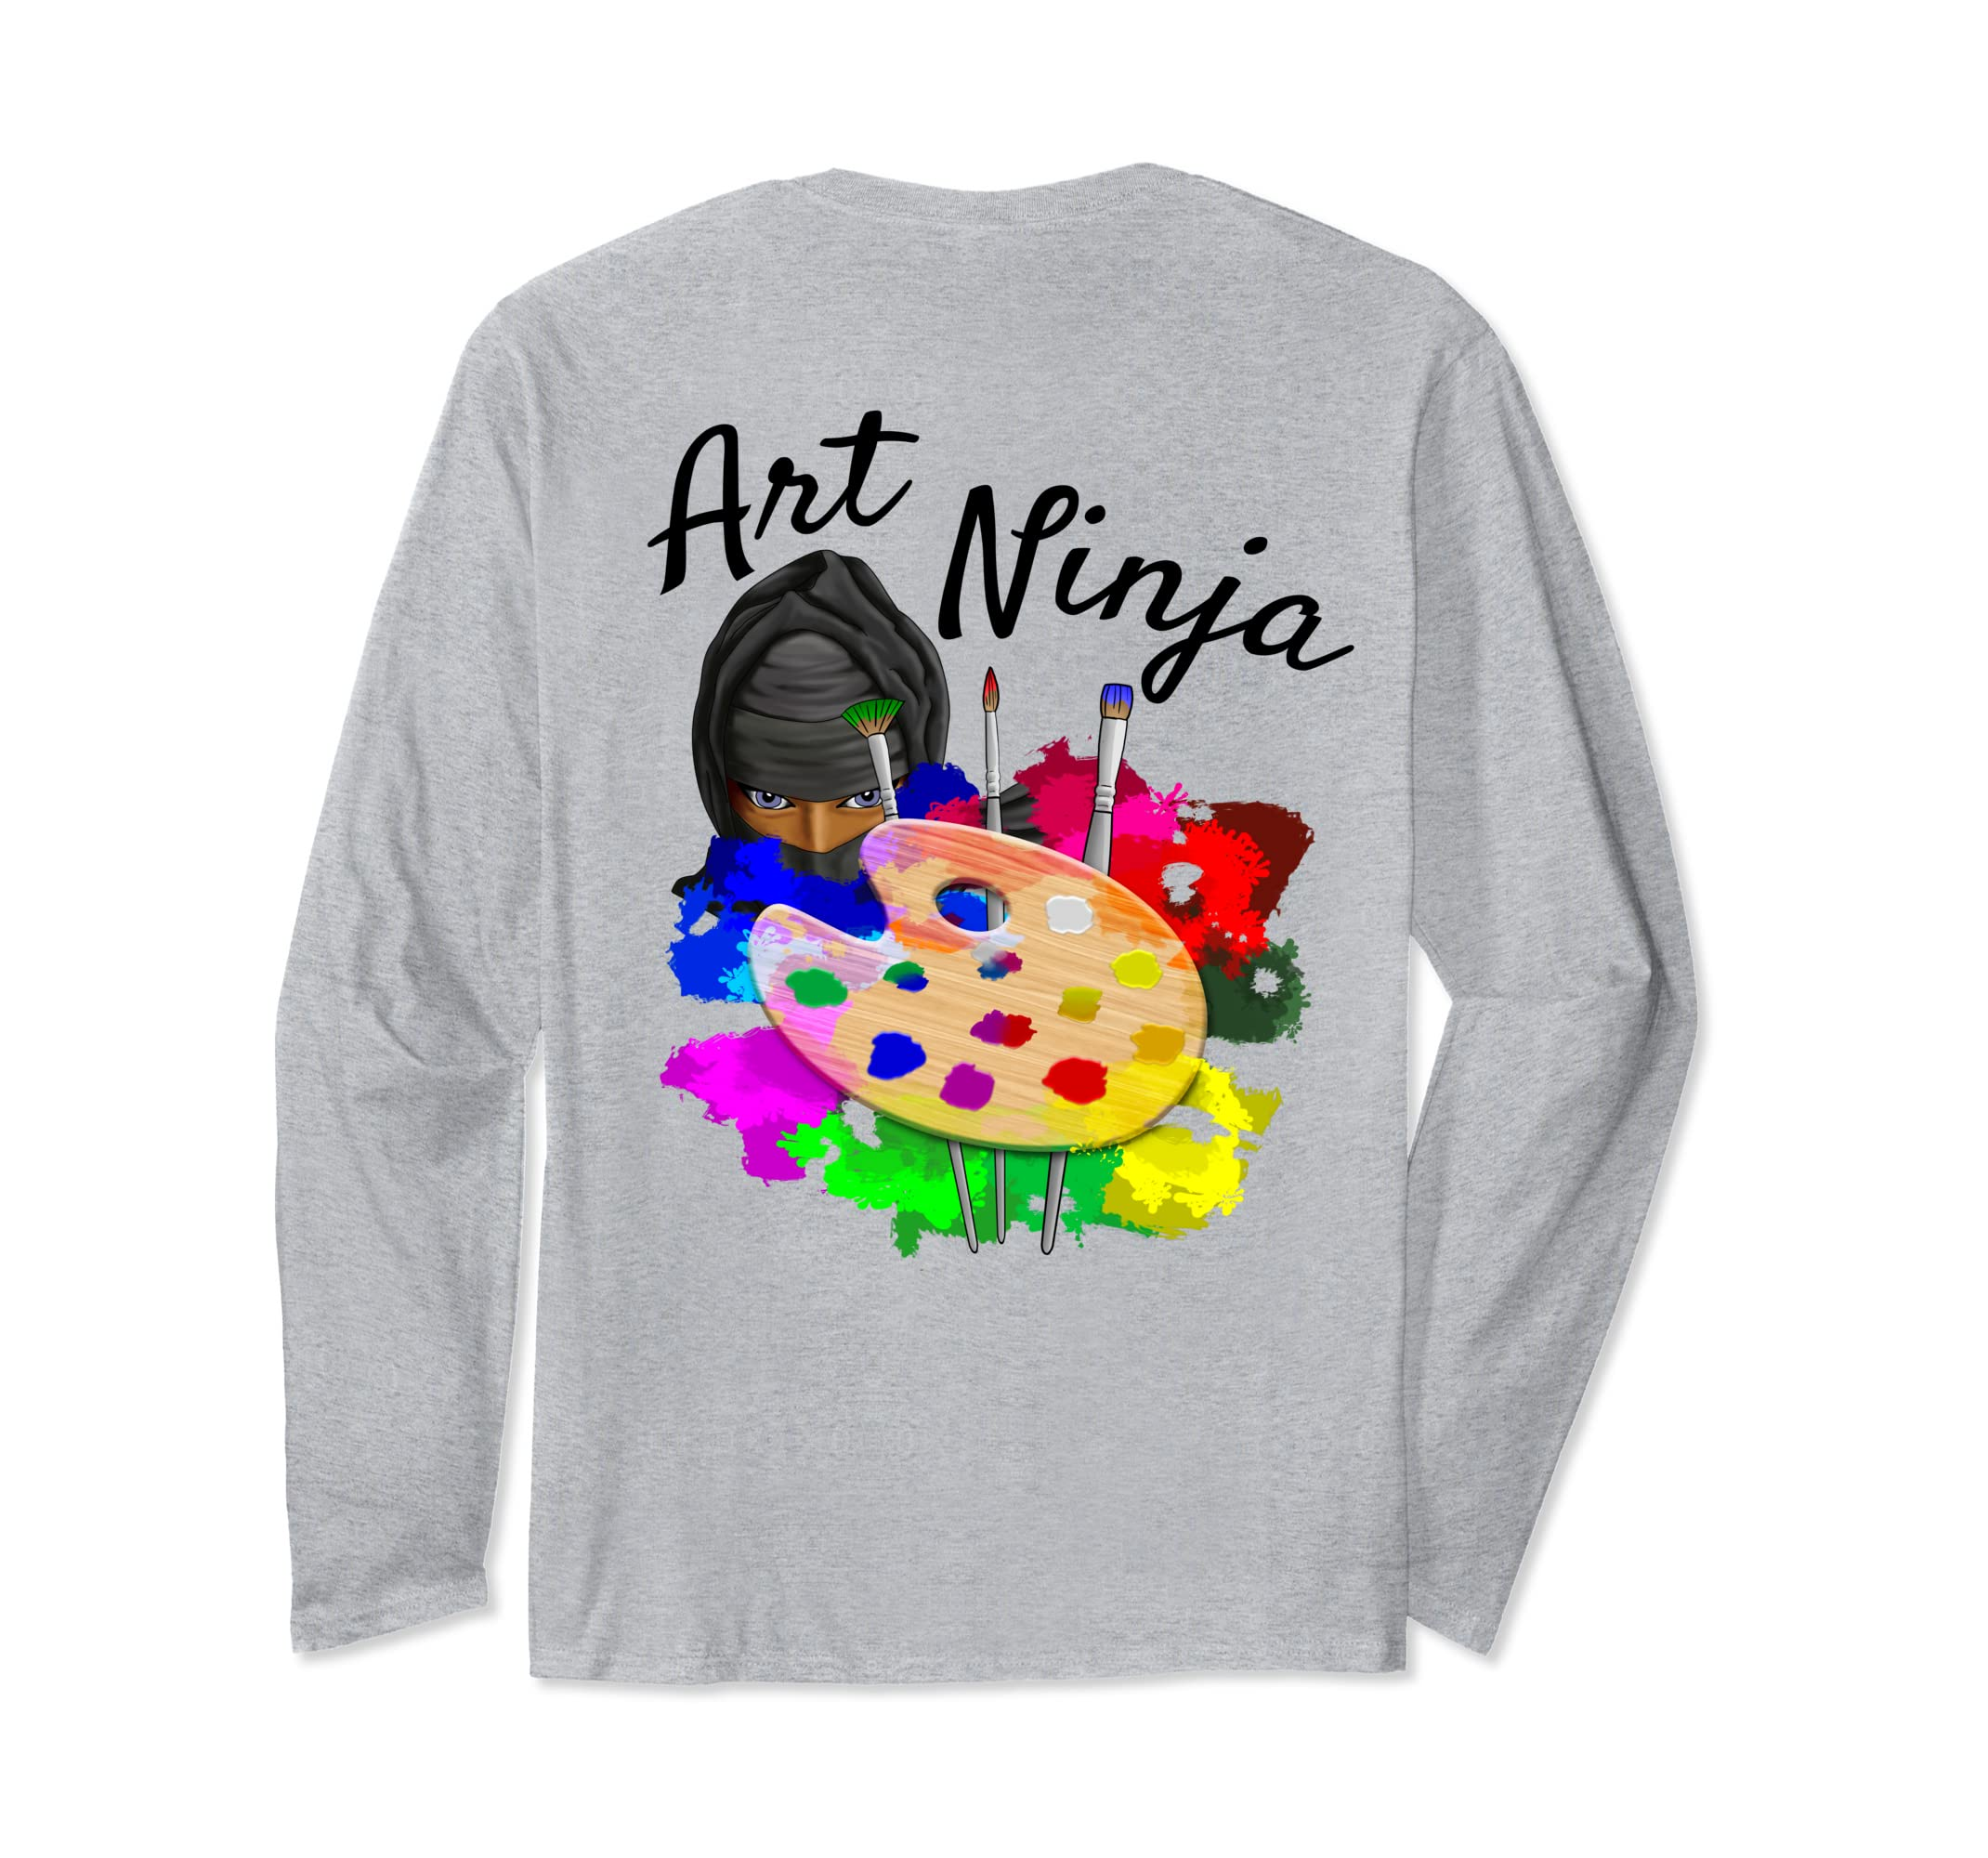 Amazon.com: Art Ninja Artist Long Sleeve T-Shirt: Clothing